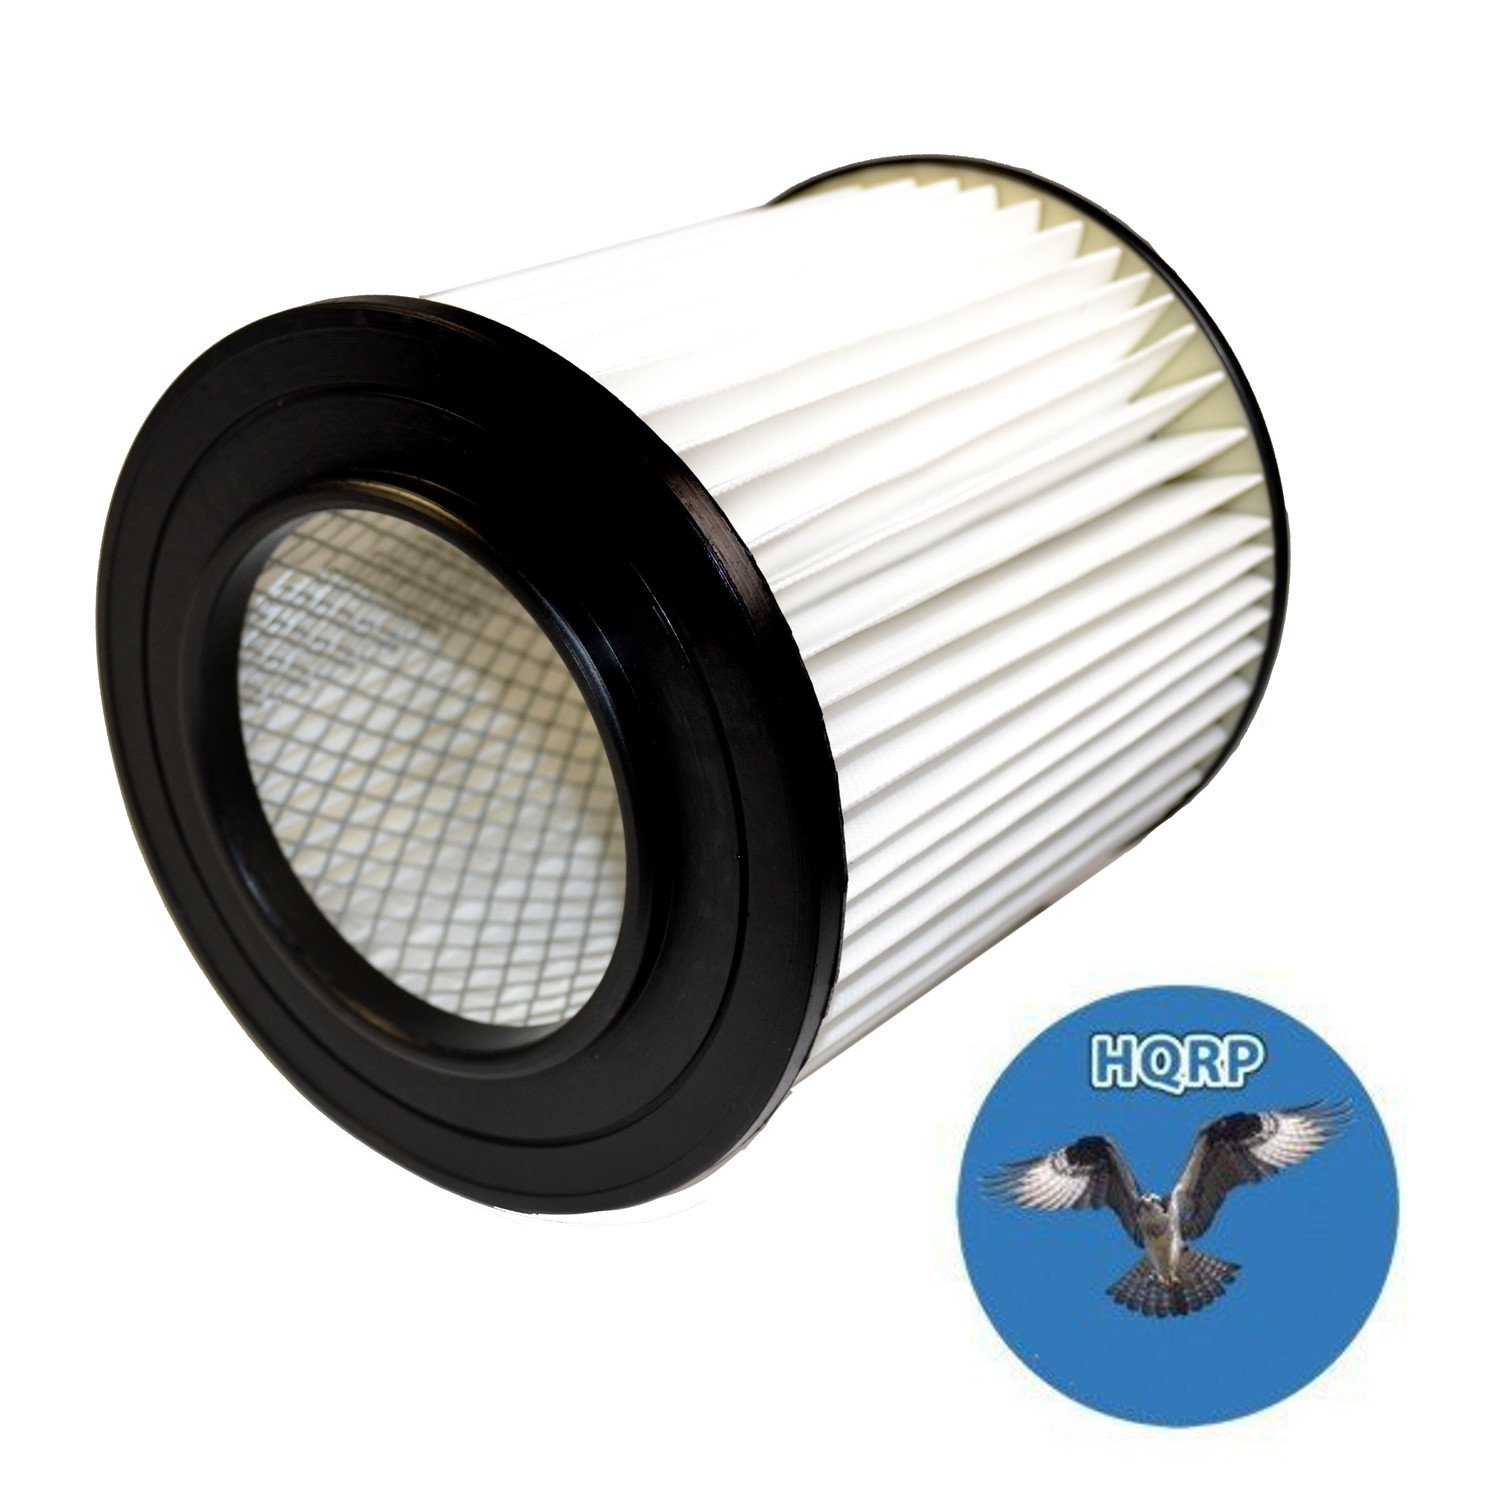 690 890 Platinum Force 299e H-P Central Vacuum Systems 990 8106-01 Replacement Coaster 590 HQRP 7 Filter for Dirt Devil Pro 390